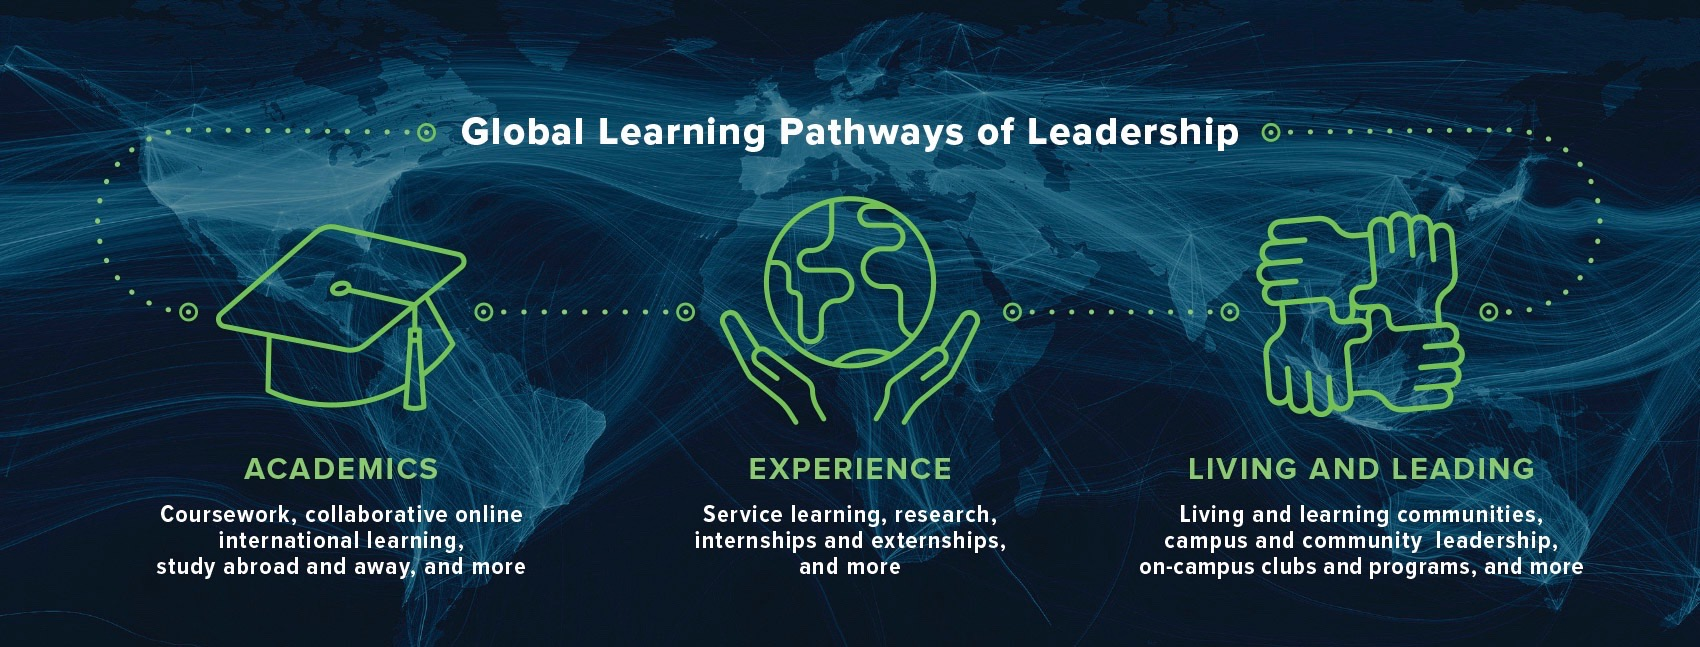 Pathways: academics, experience, living and leading